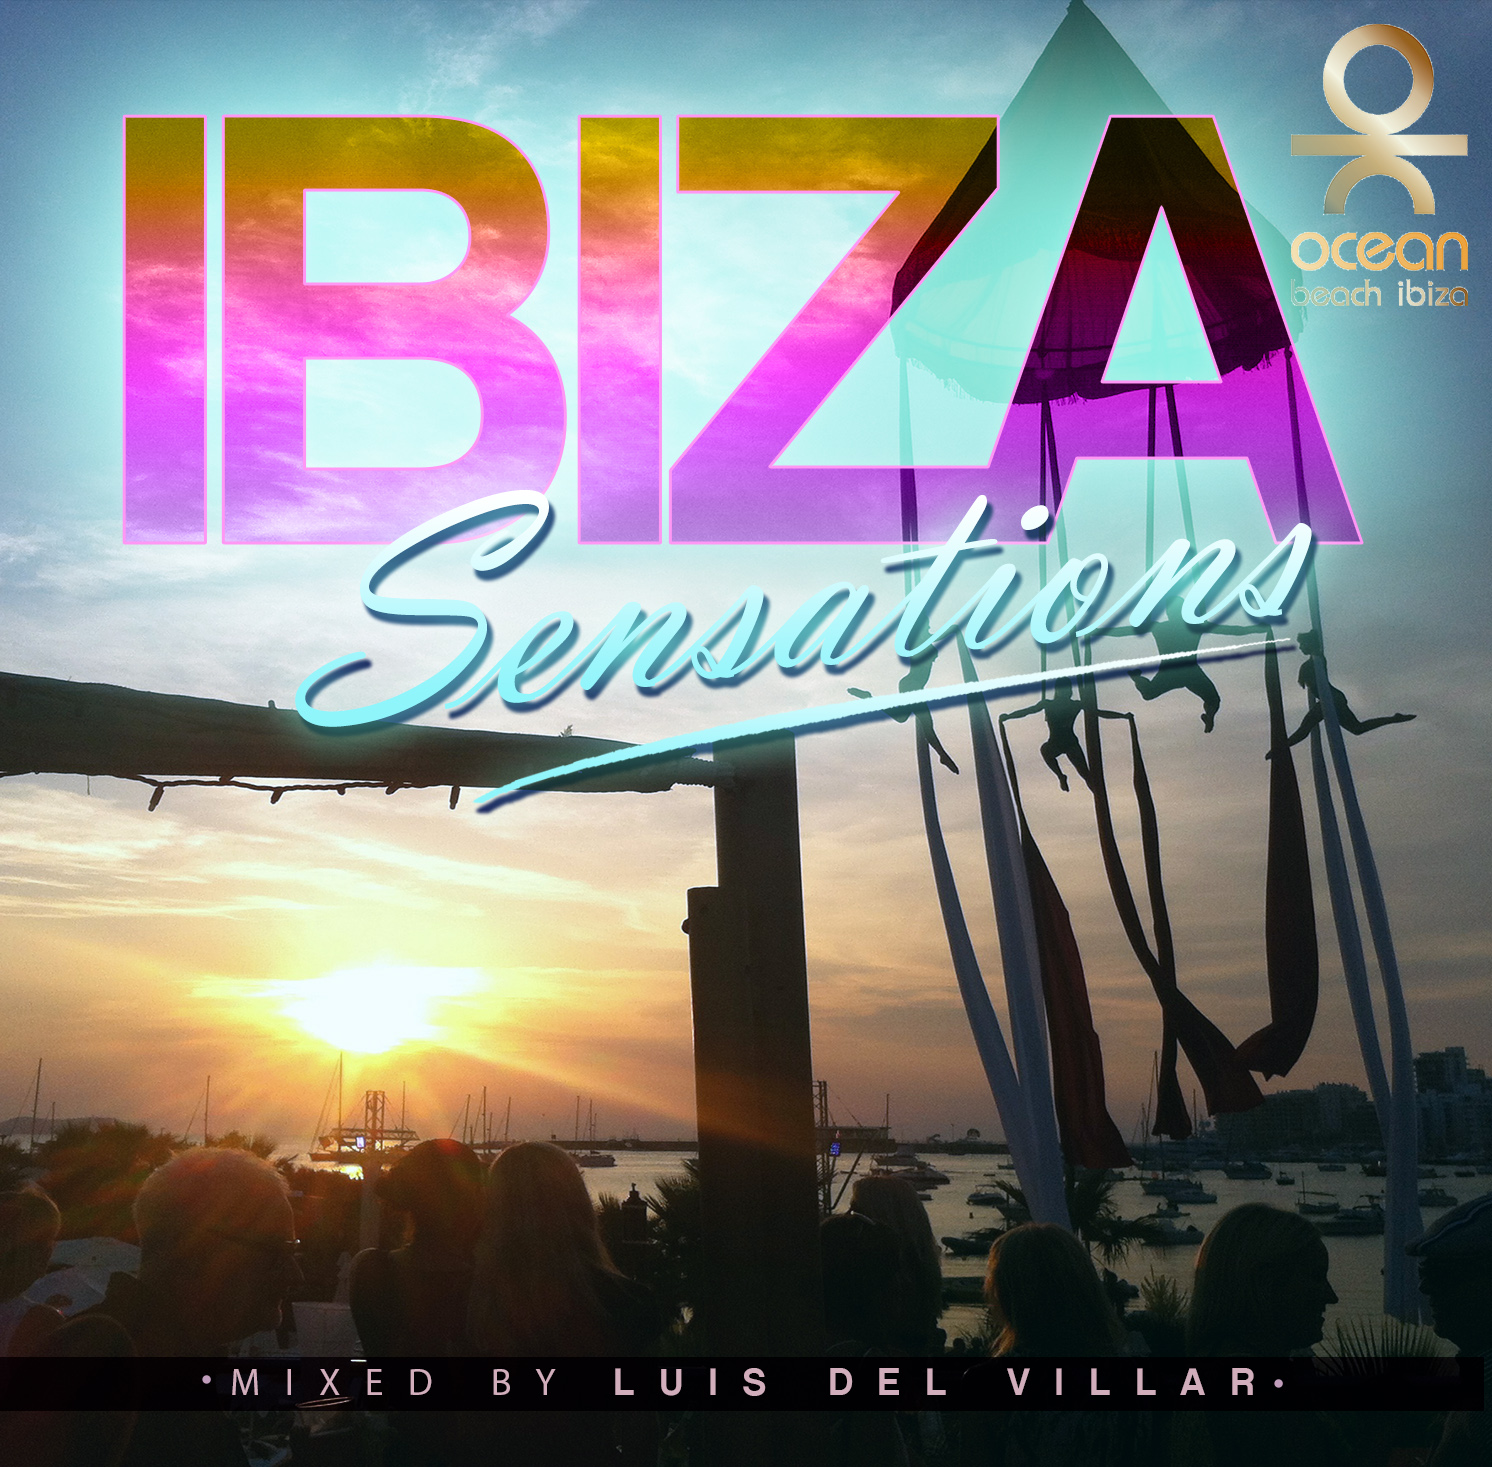 Artwork for Ibiza Sensations 116 @ Cafe del Rio - Budapest (Hungary)